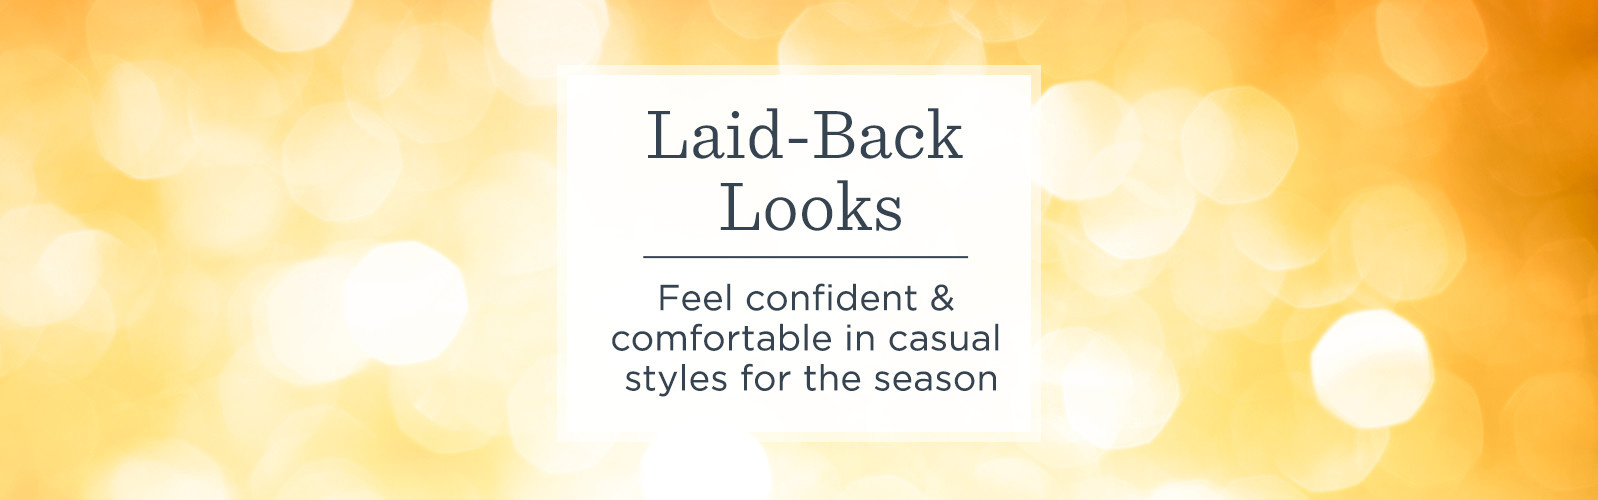 Laid-Back Looks.  Feel confident & comfortable in casual styles for the season.